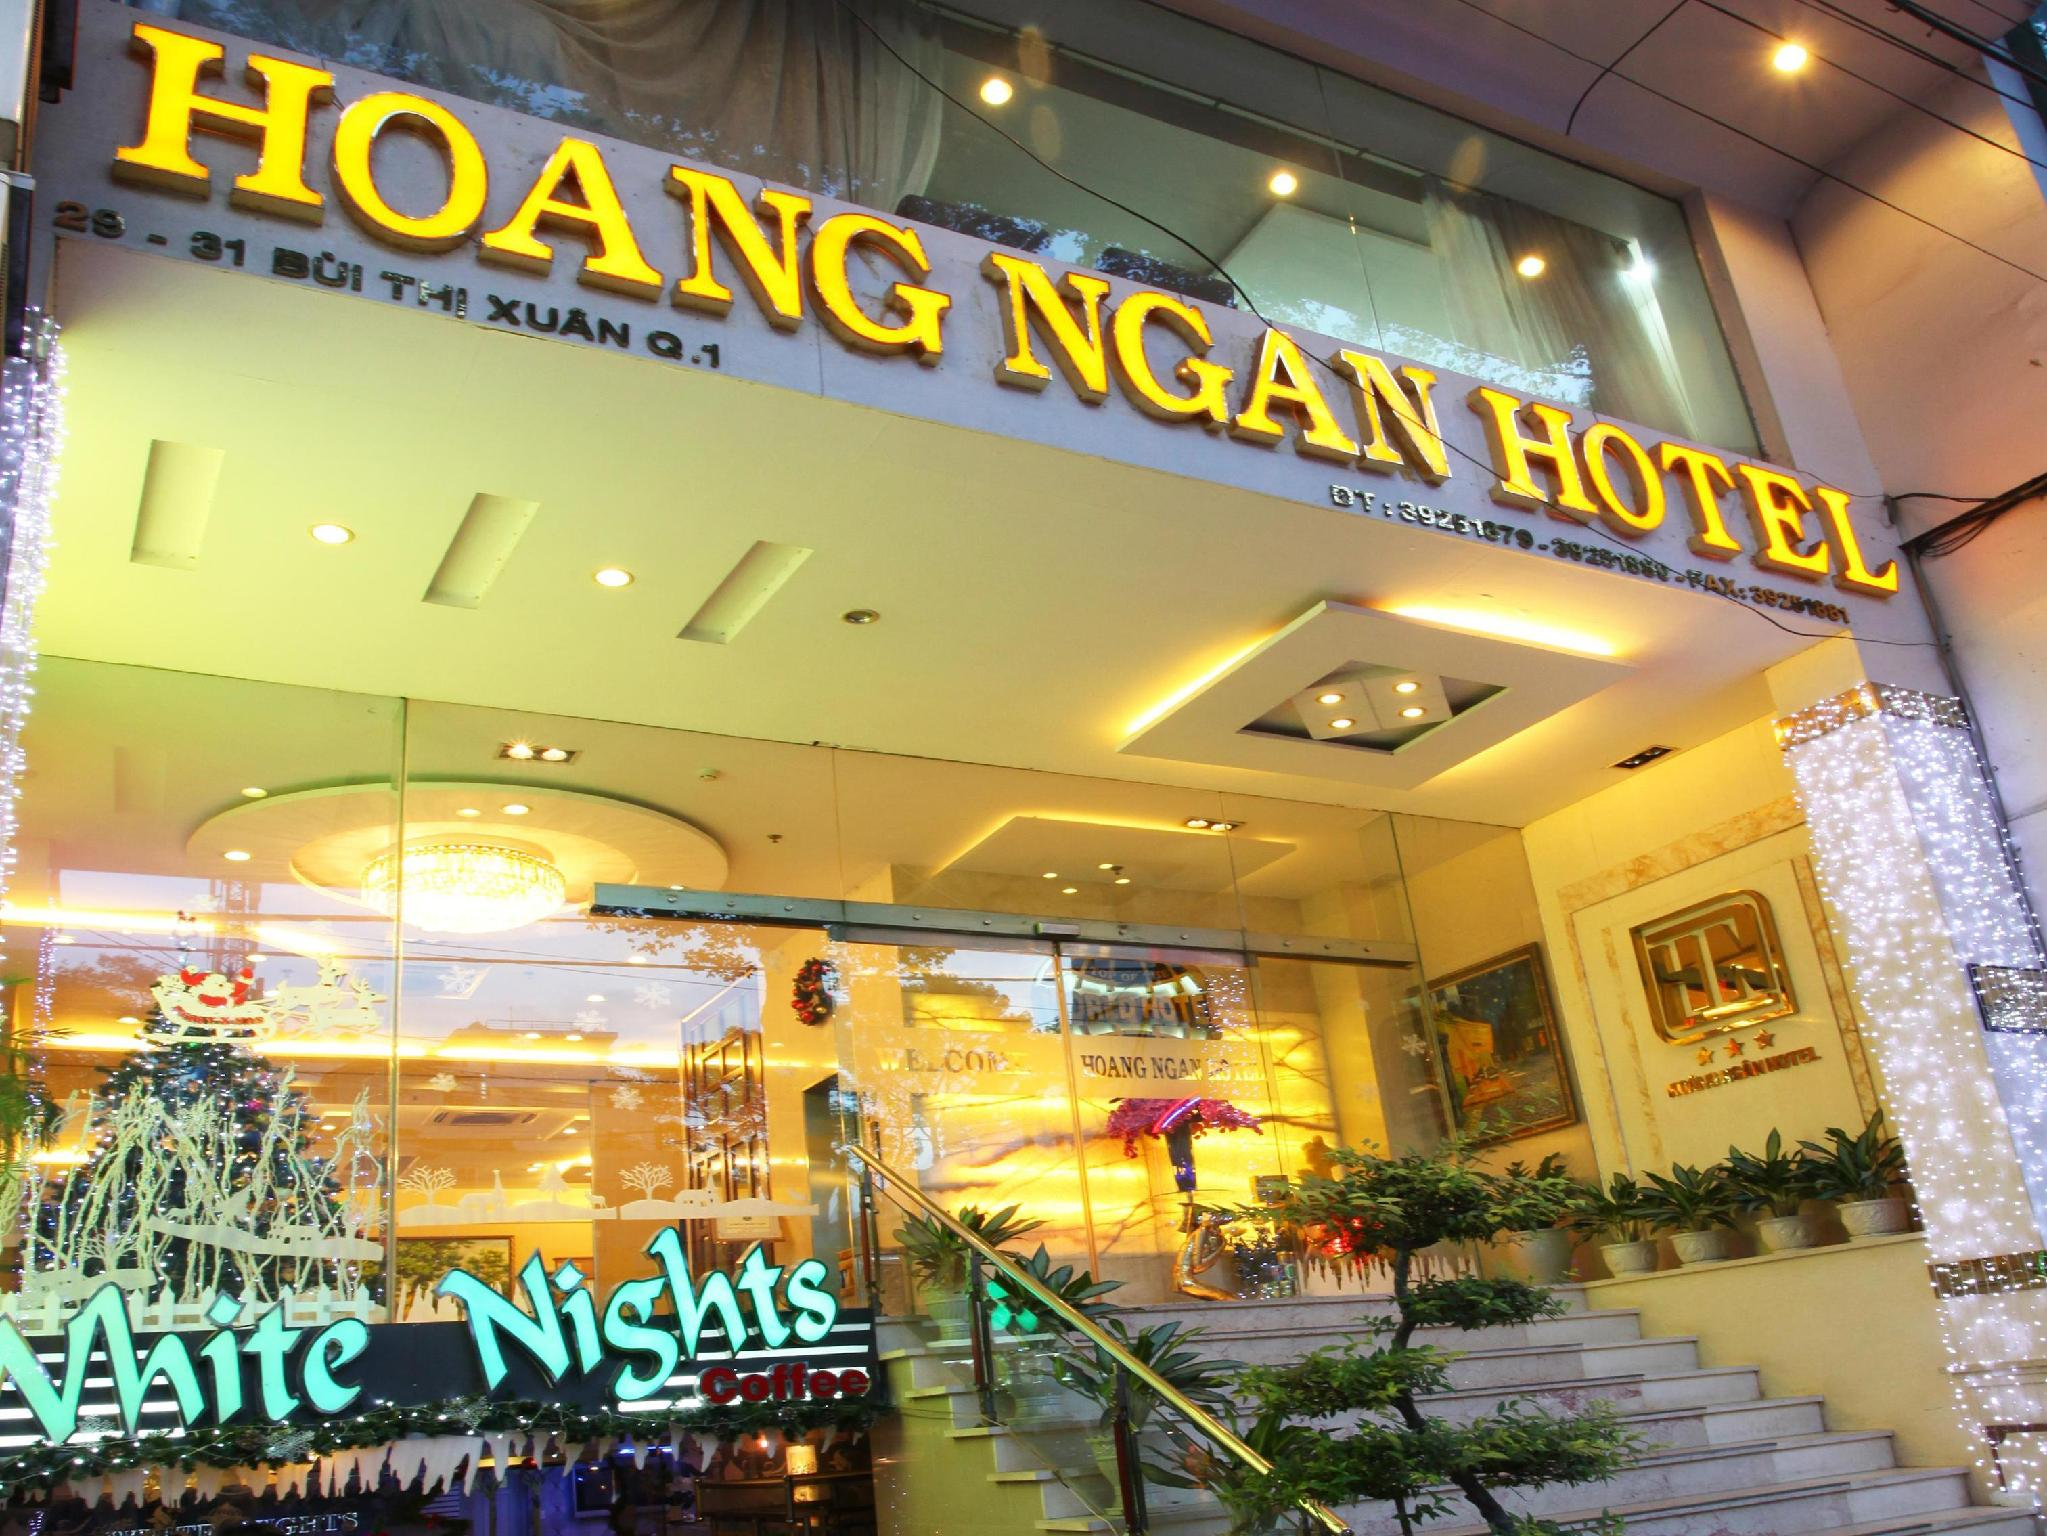 Hotell Gia Linh hotel